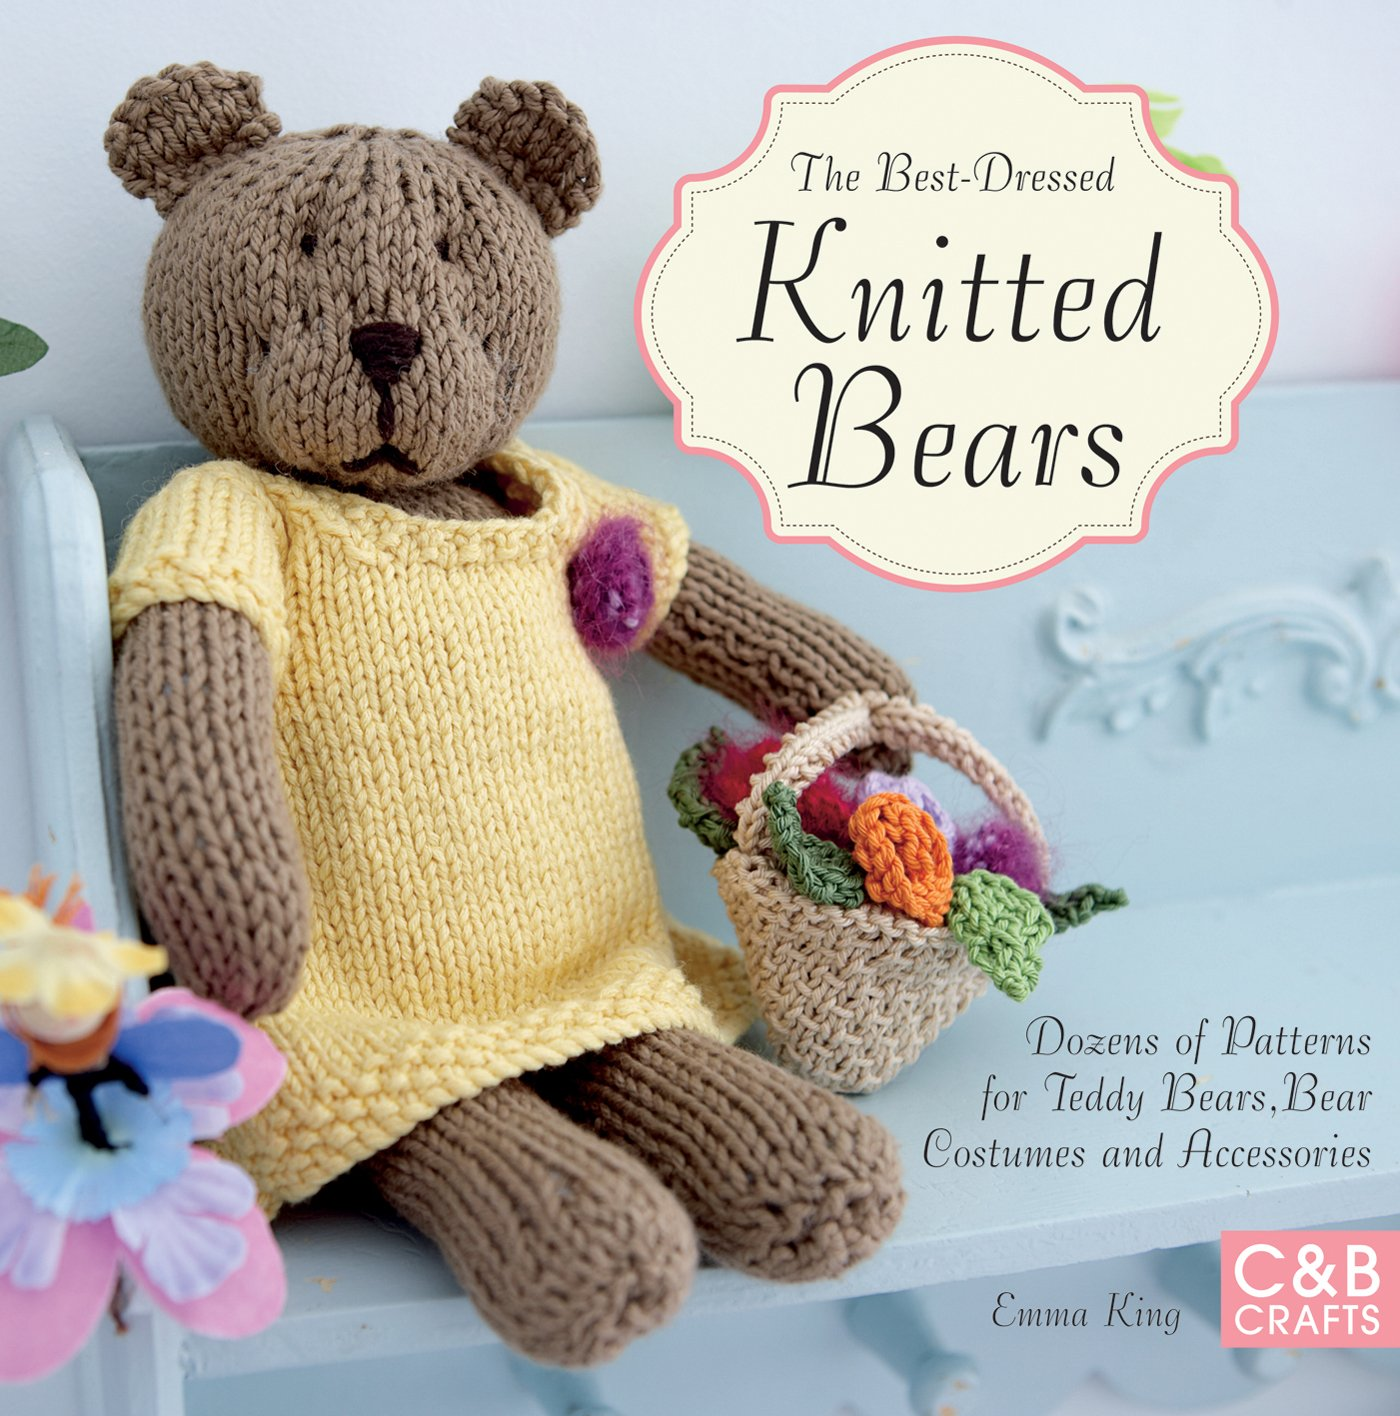 Teddy Clothes Knitting Patterns - FREE PATTERNS